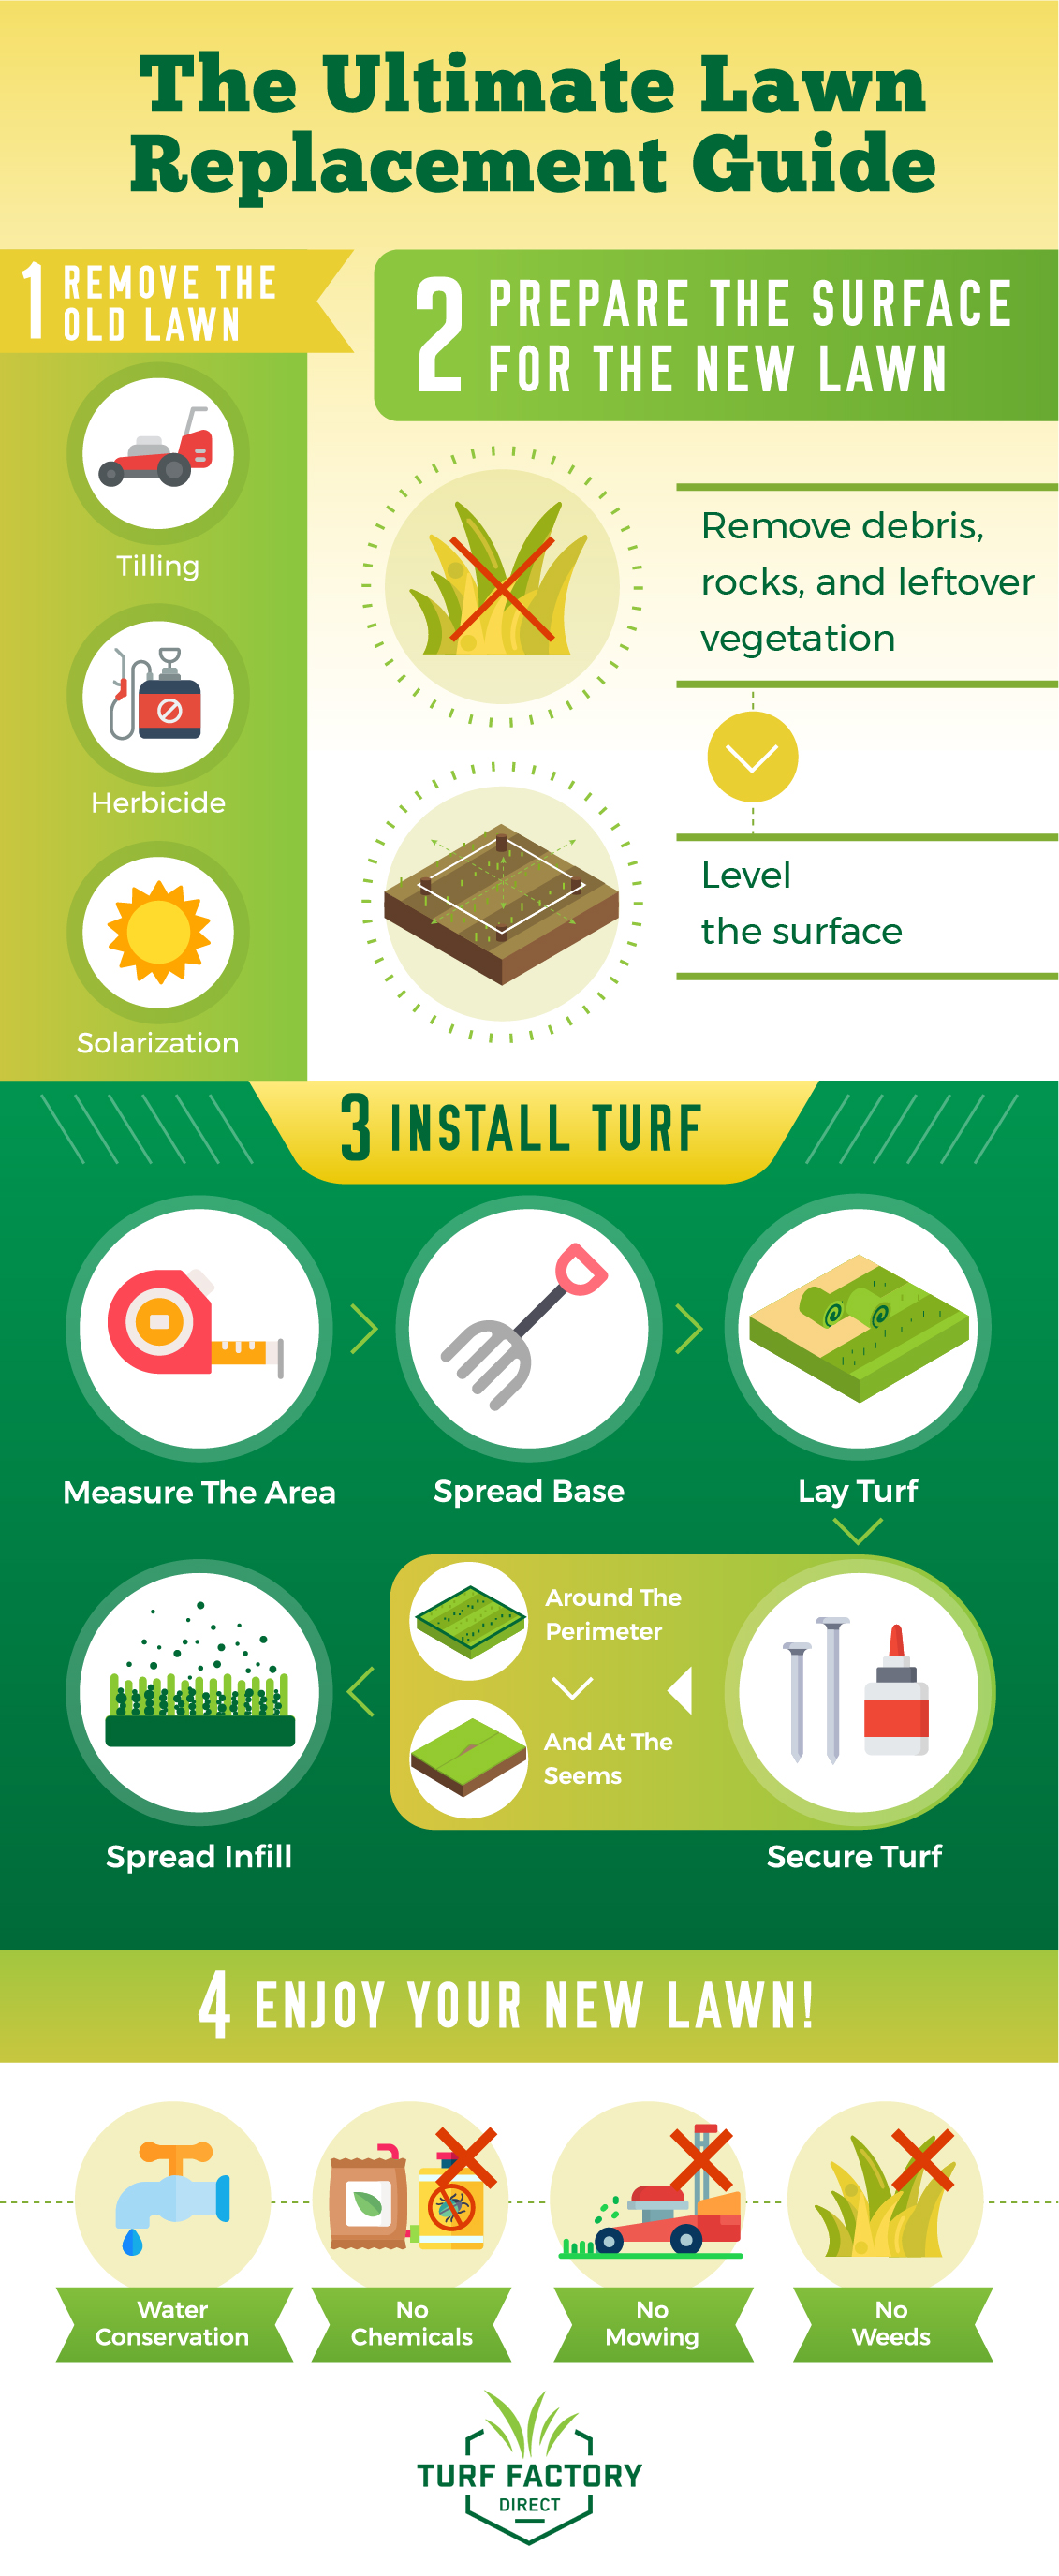 Turf Factory Direct What to Consider Before Replacing Your Lawn The Ultimate Lawn Replacement Guide